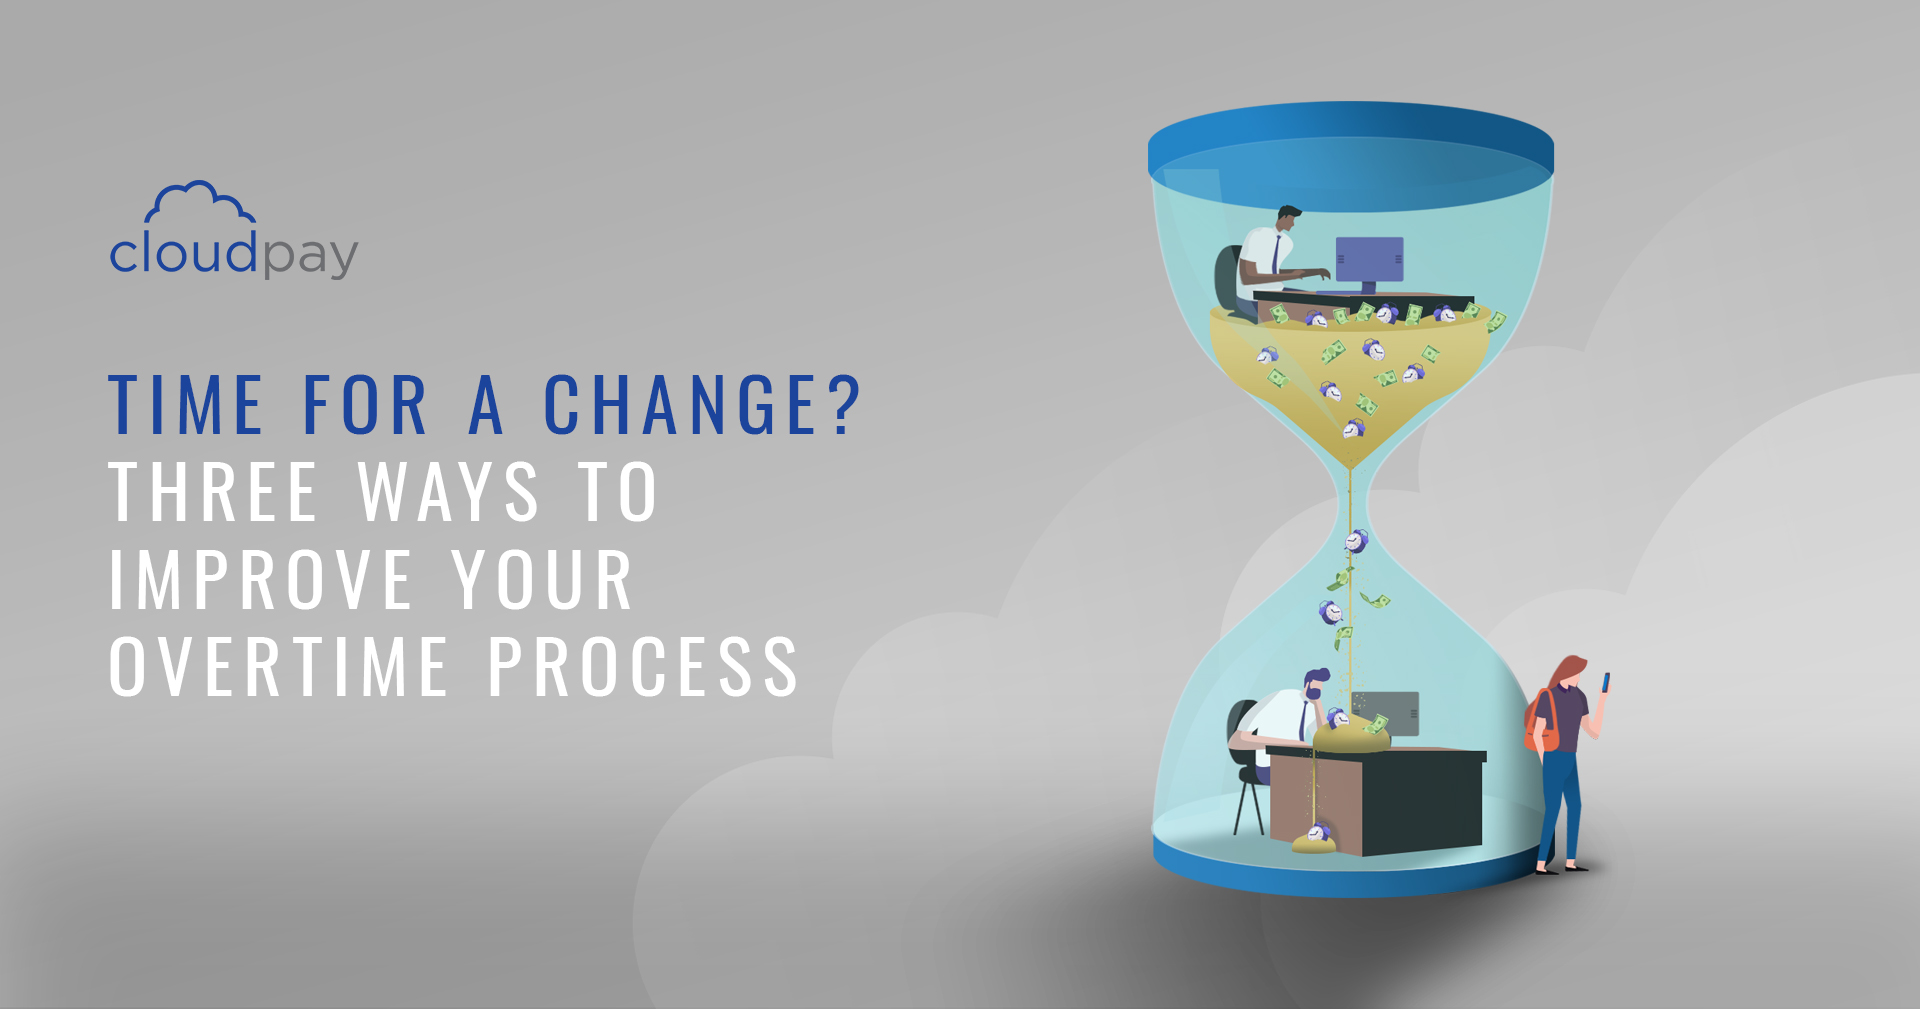 Time for a change - three ways to improve your overtime process